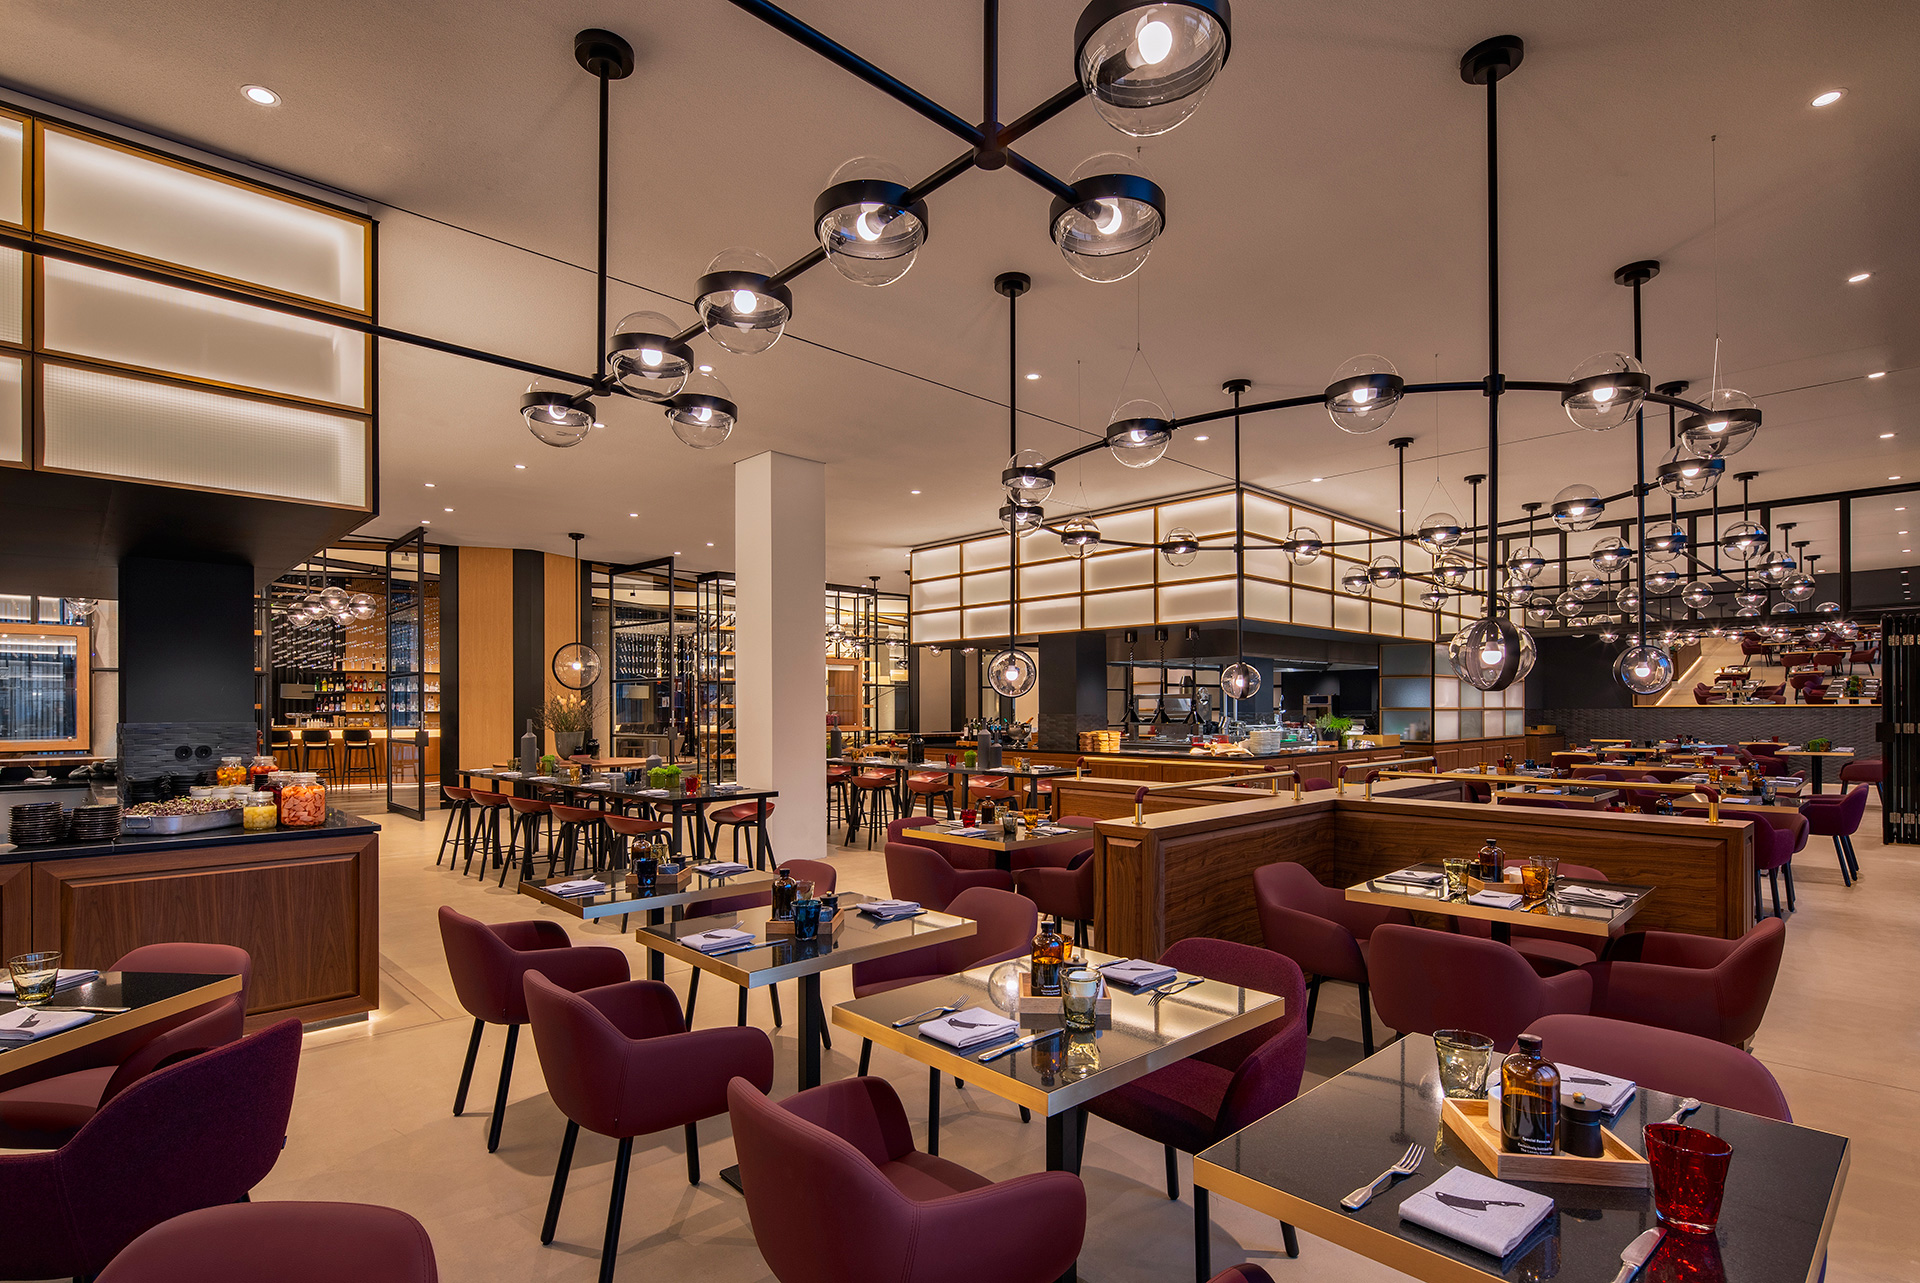 At the heart of the Lonely Broccoli restaurant is its open kitchen, which is connected to the lounge with an iconic glass display wall| Andaz Munich Schwabinger Tor| Concrete| STIR